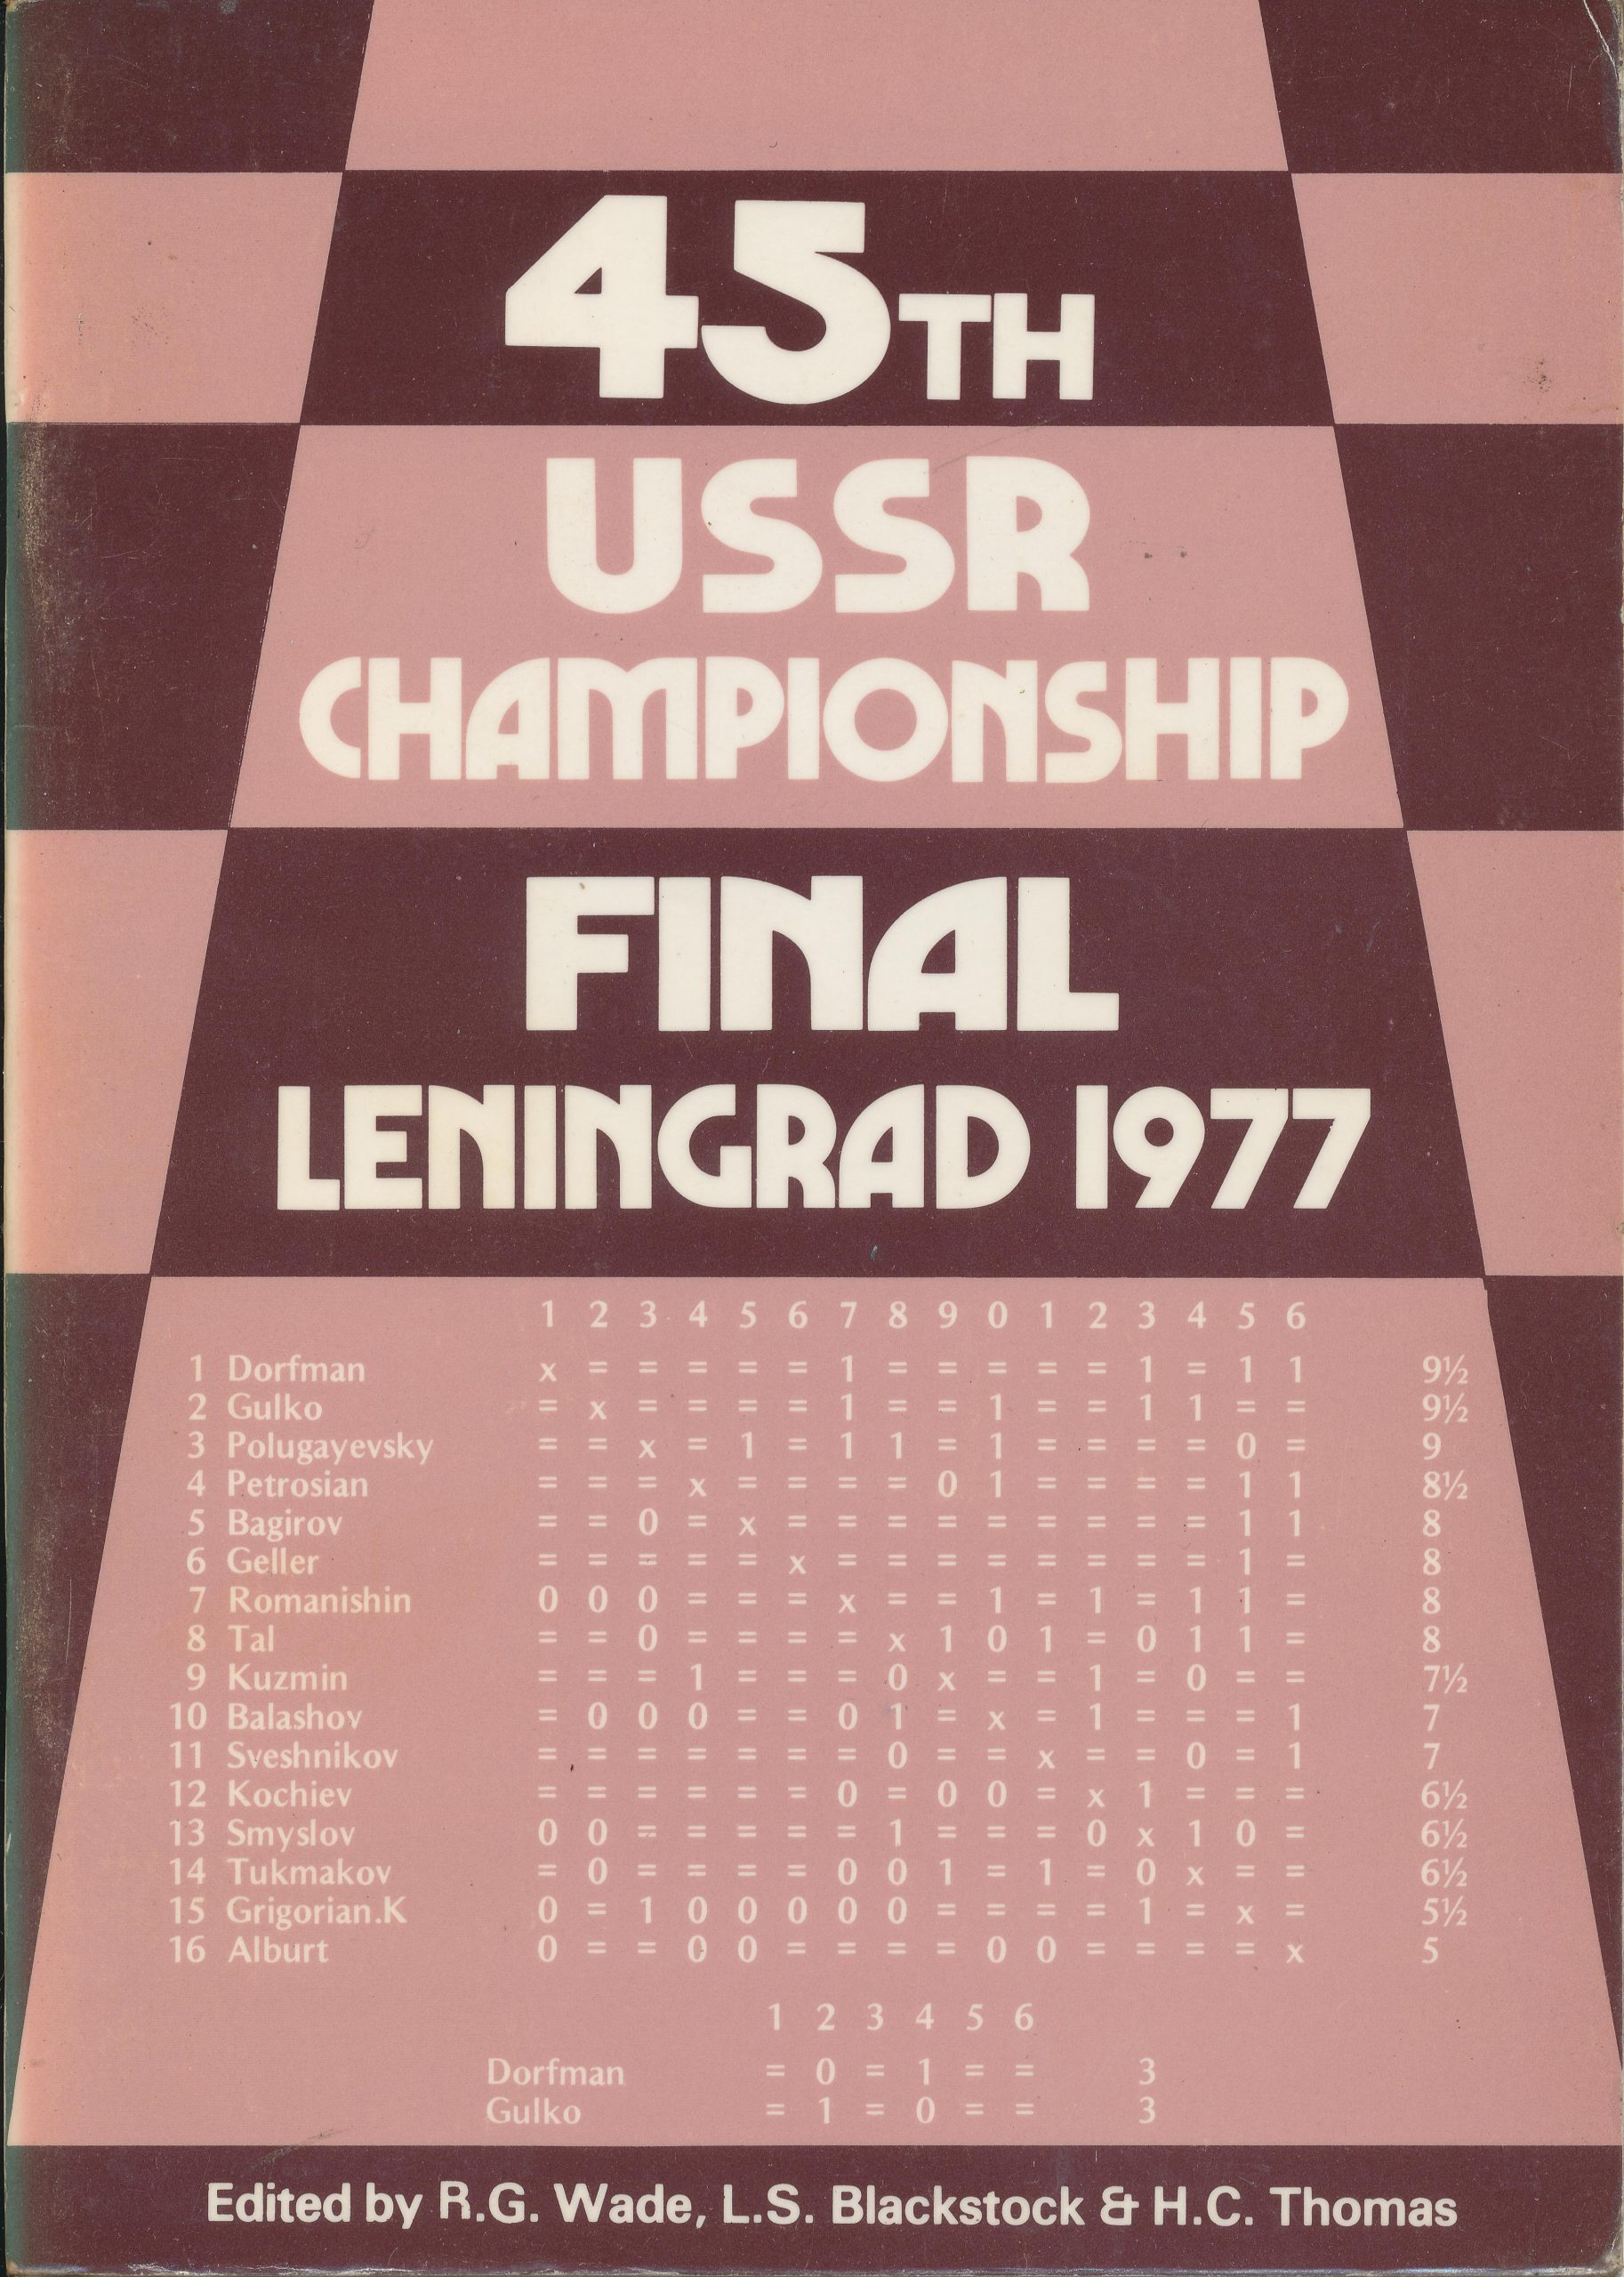 45th USSR Championship Final Leningrad 1977, RG Wade, LS Blackstock and HC Thomas, Master Chess Publications, 1977